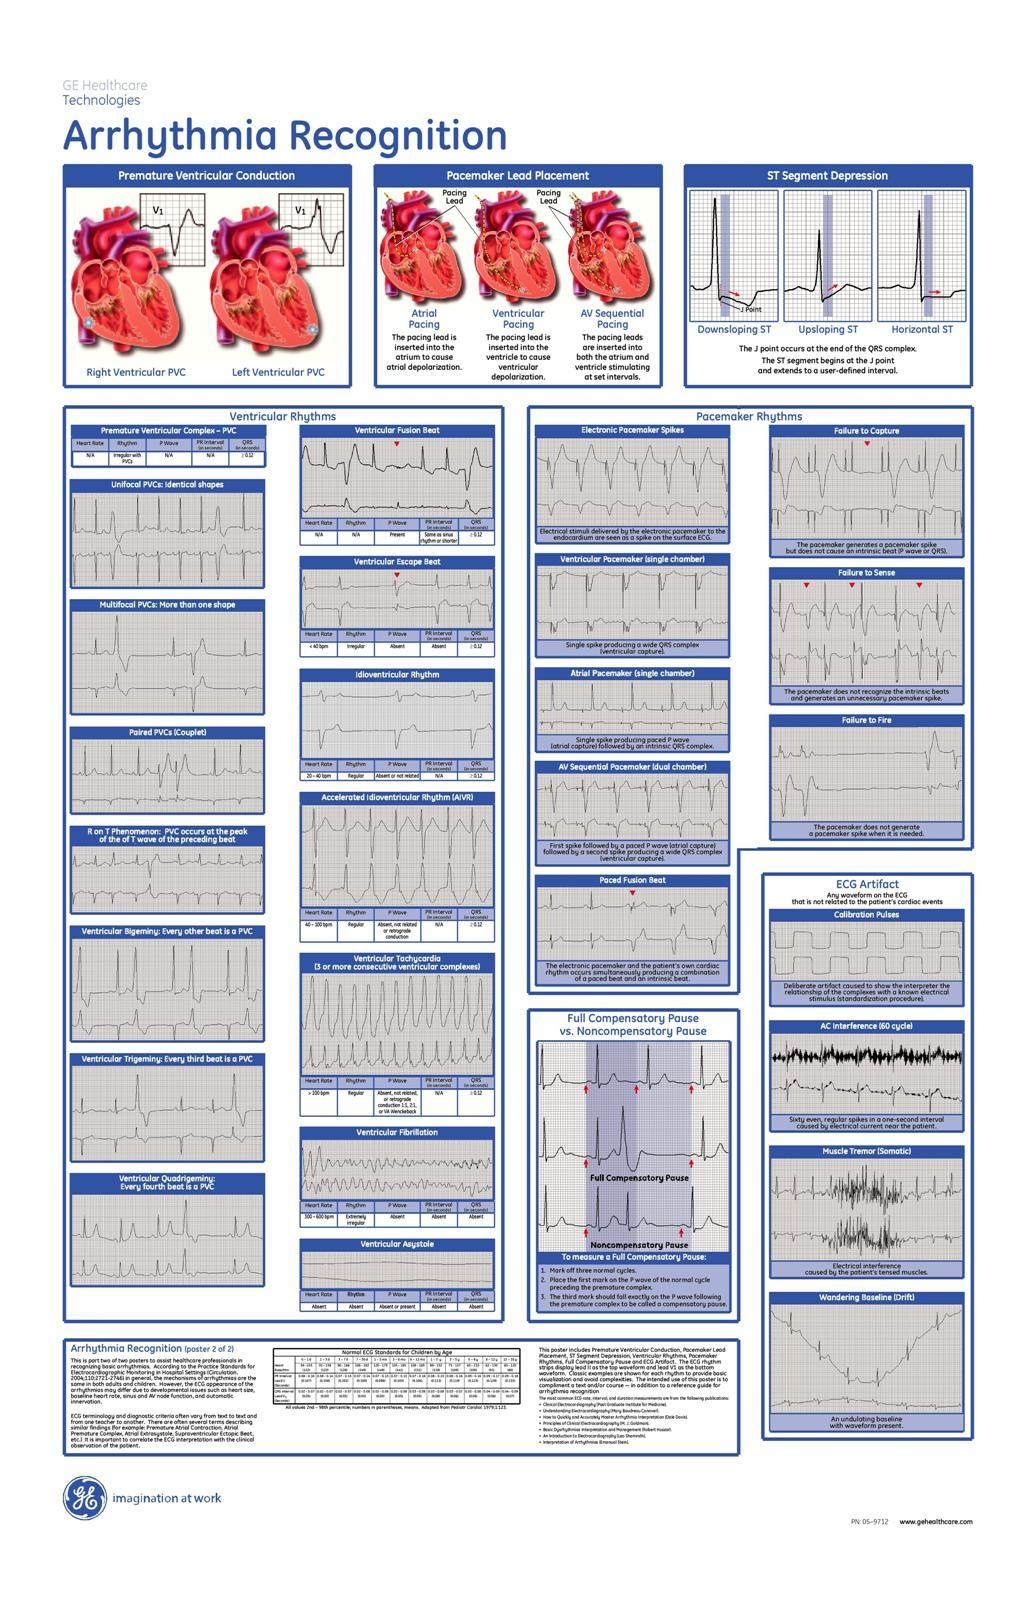 Arrhythmia Recognition Poster